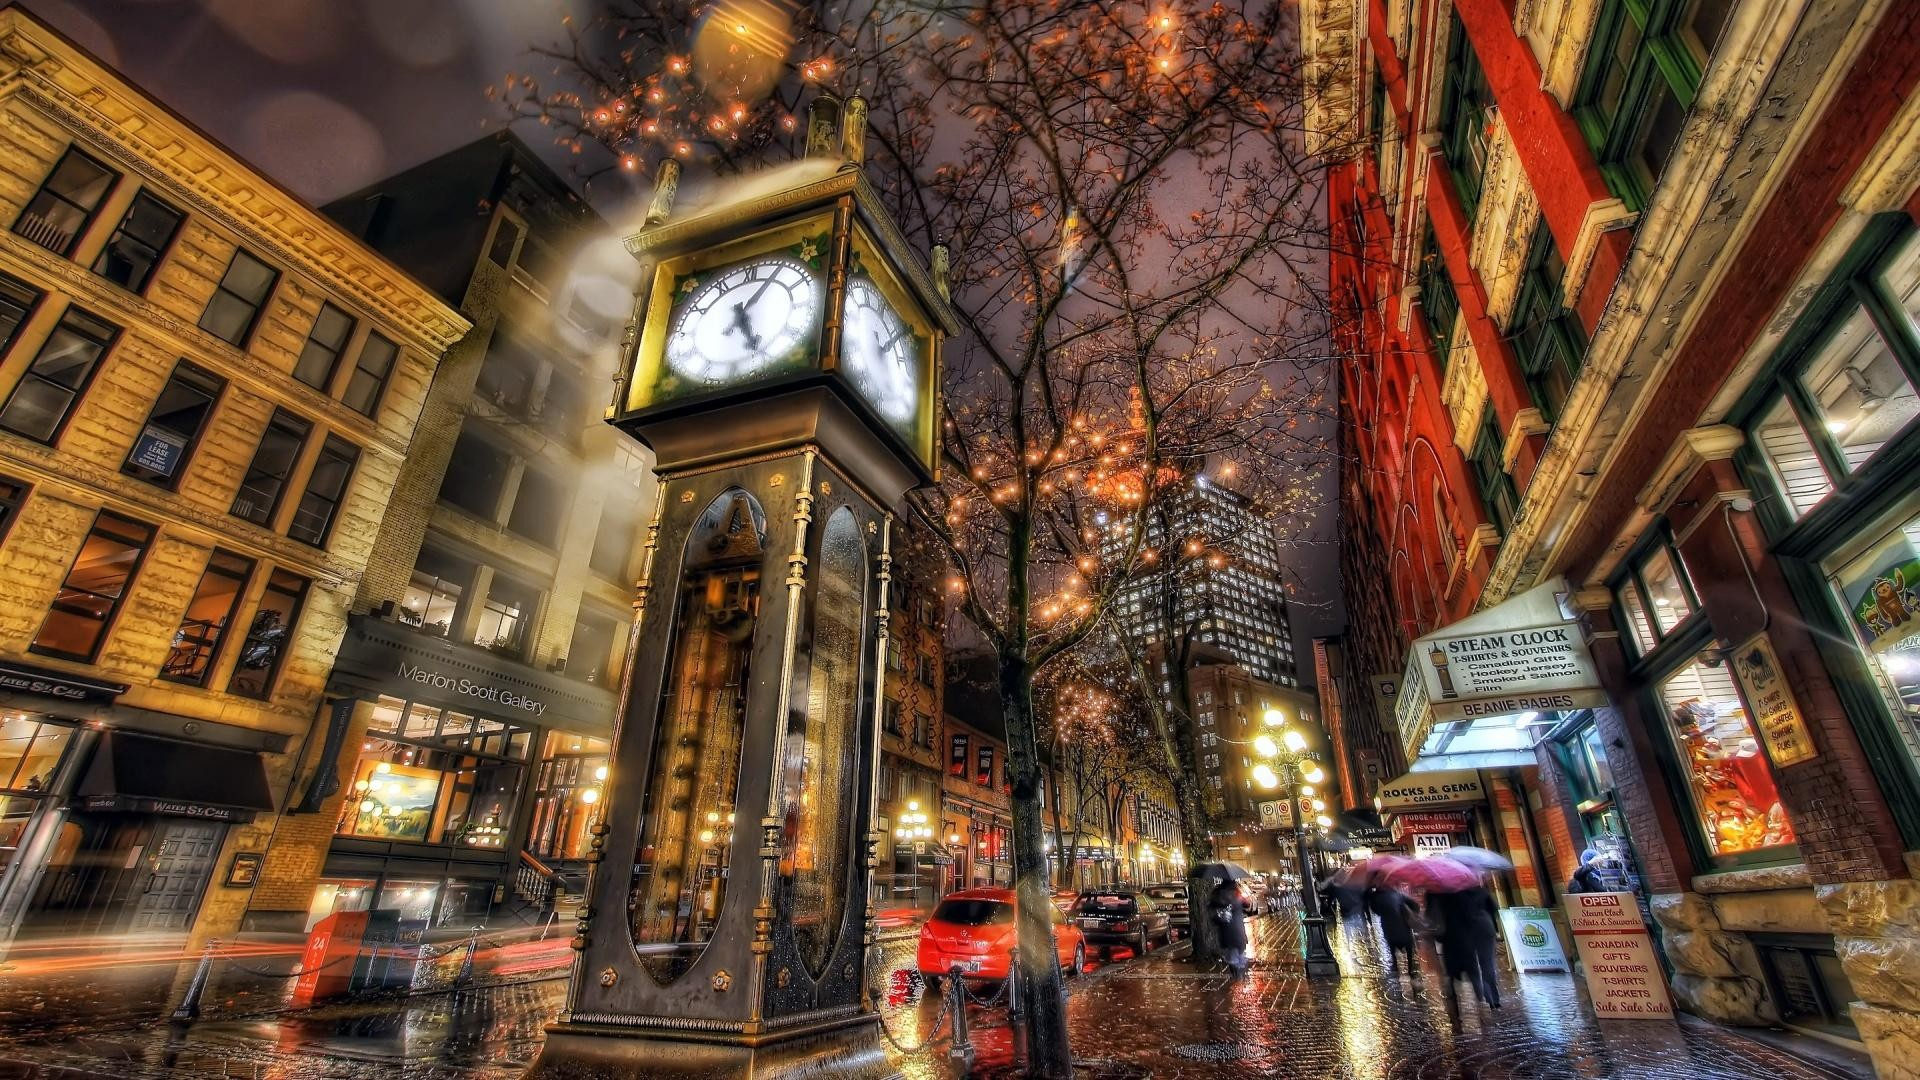 General 1920x1080 clocks HDR street Vancouver street light winter people